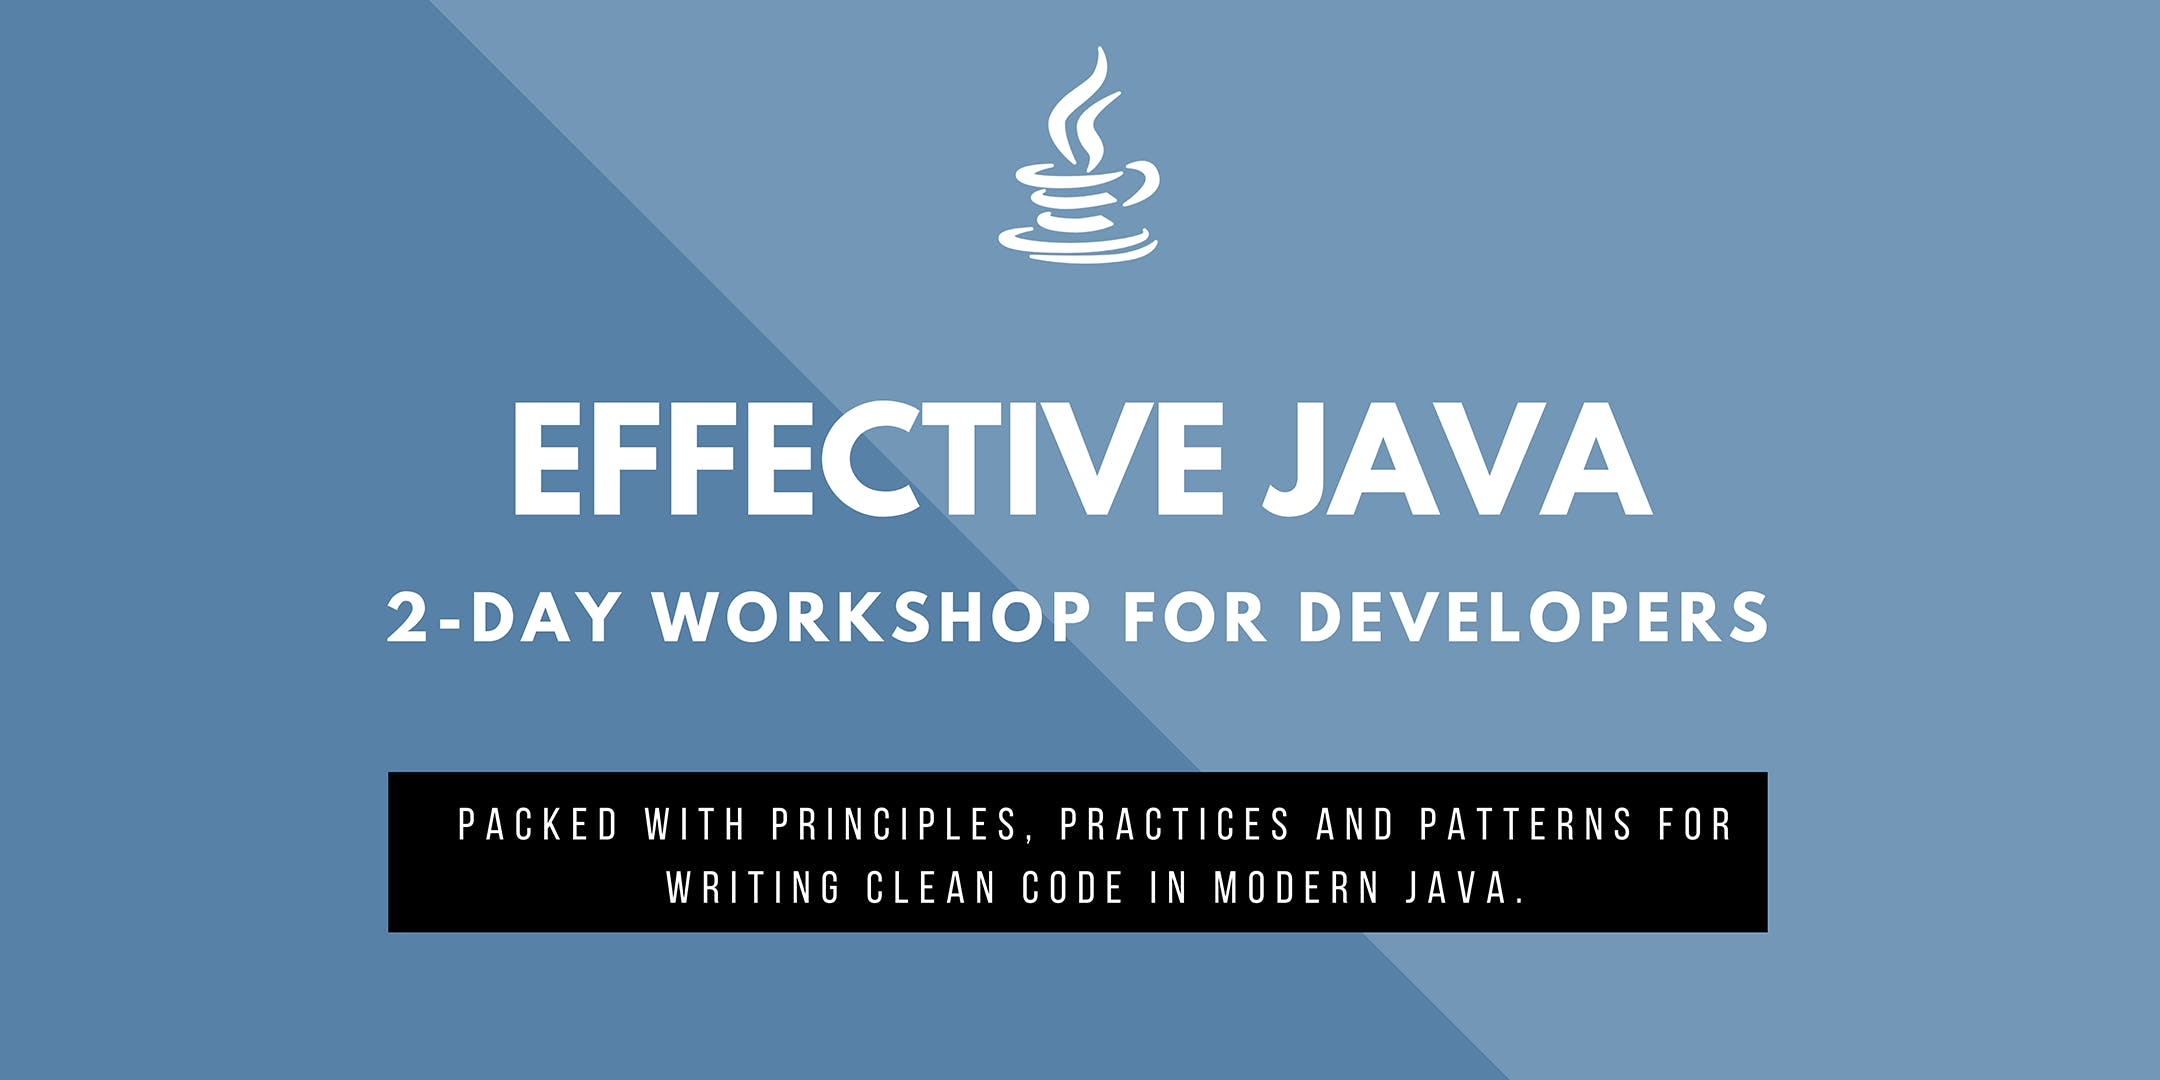 TOP Effective Java 9 for Developers (Krakw)